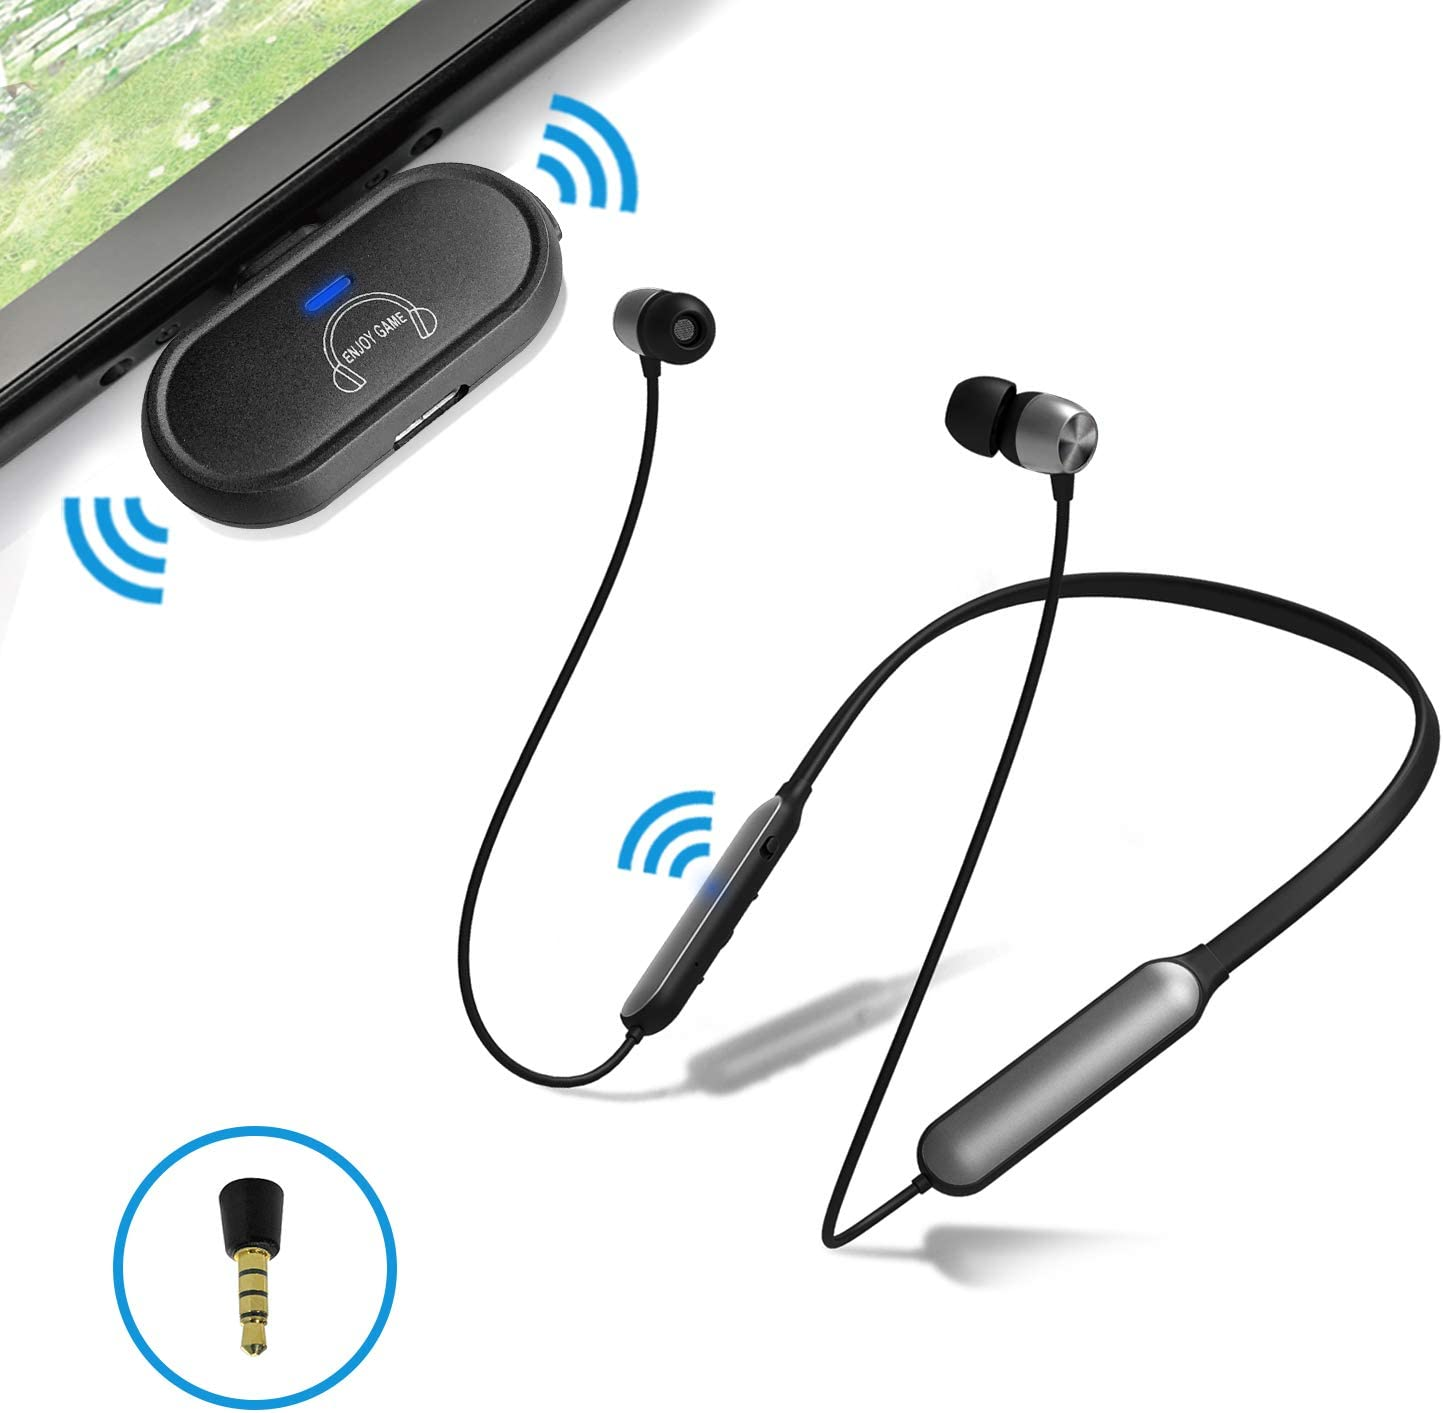 Giveet Bluetooth 5.0 Gaming Headphones for Nintendo Switch Lite, PS4, PC, w/USB to Type-C Transmitter/Mini Mic, Wireless Headset Earbuds Support in-Game Voice Chat, Plug n Play, No Audio Delay